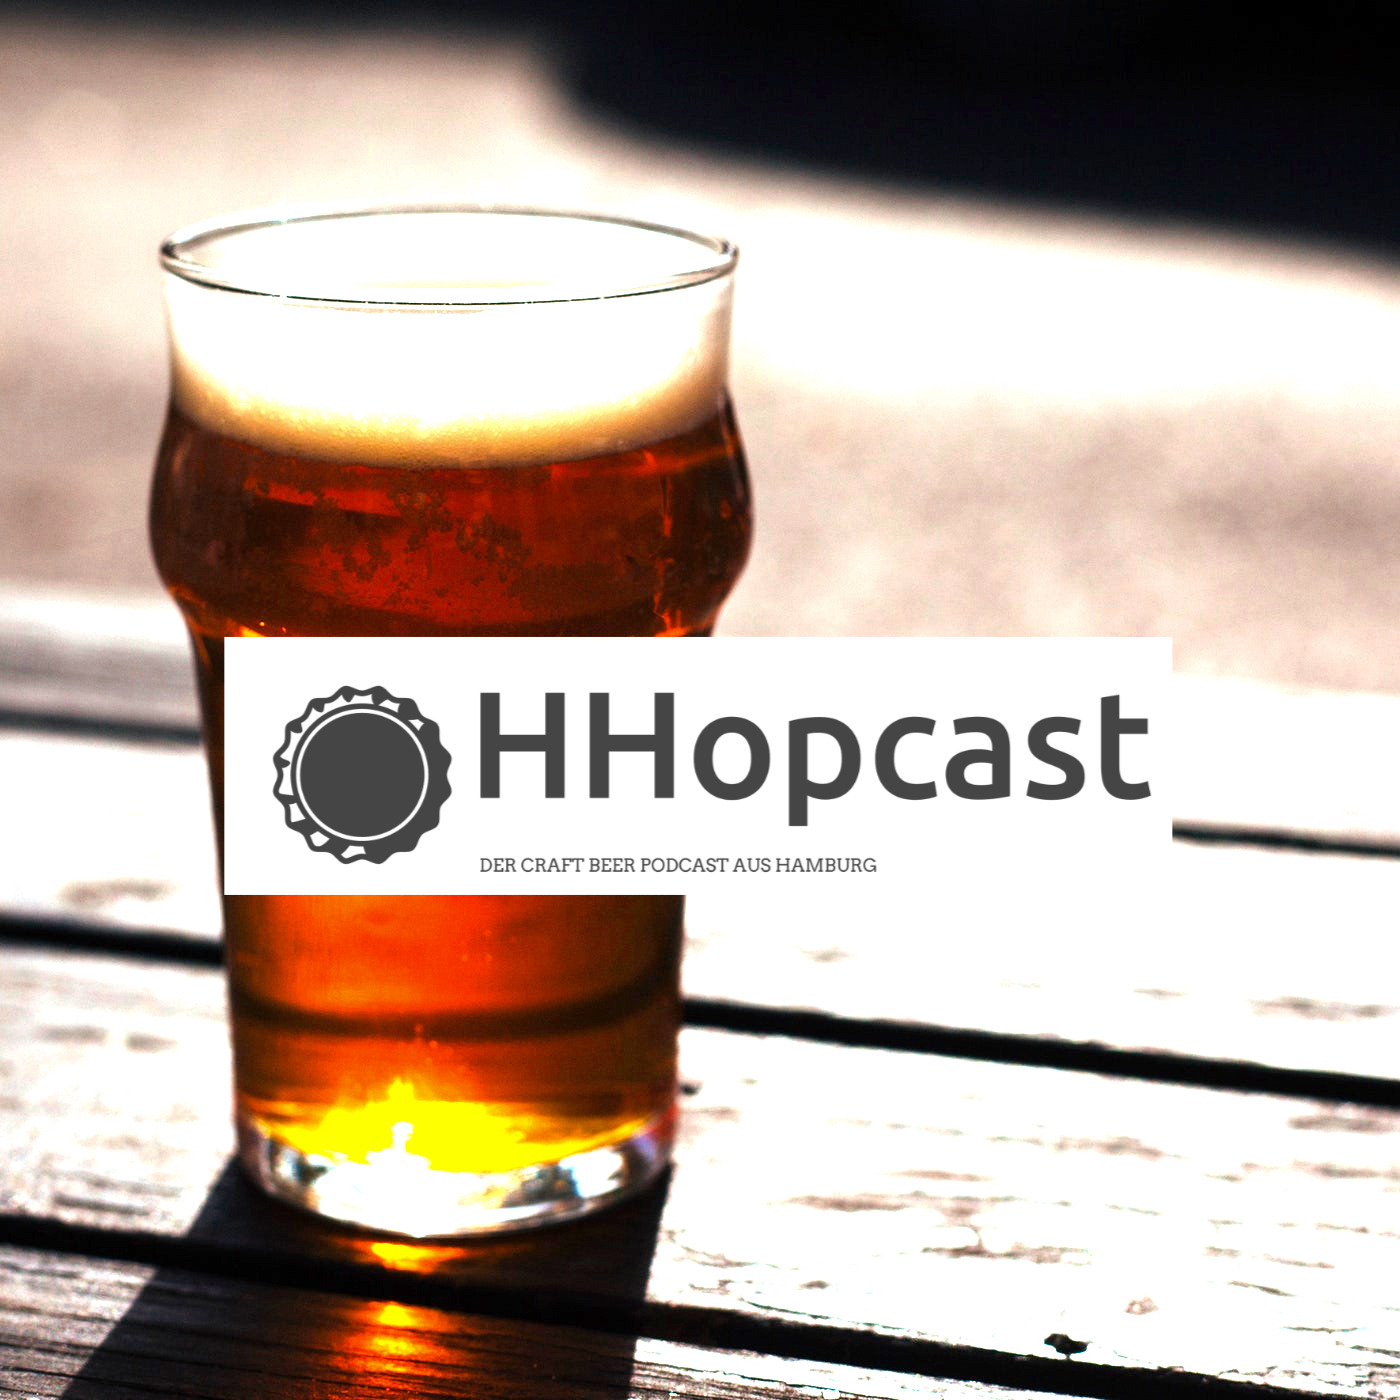 HHopcast der Craft Beer Podcast aus Hamburg